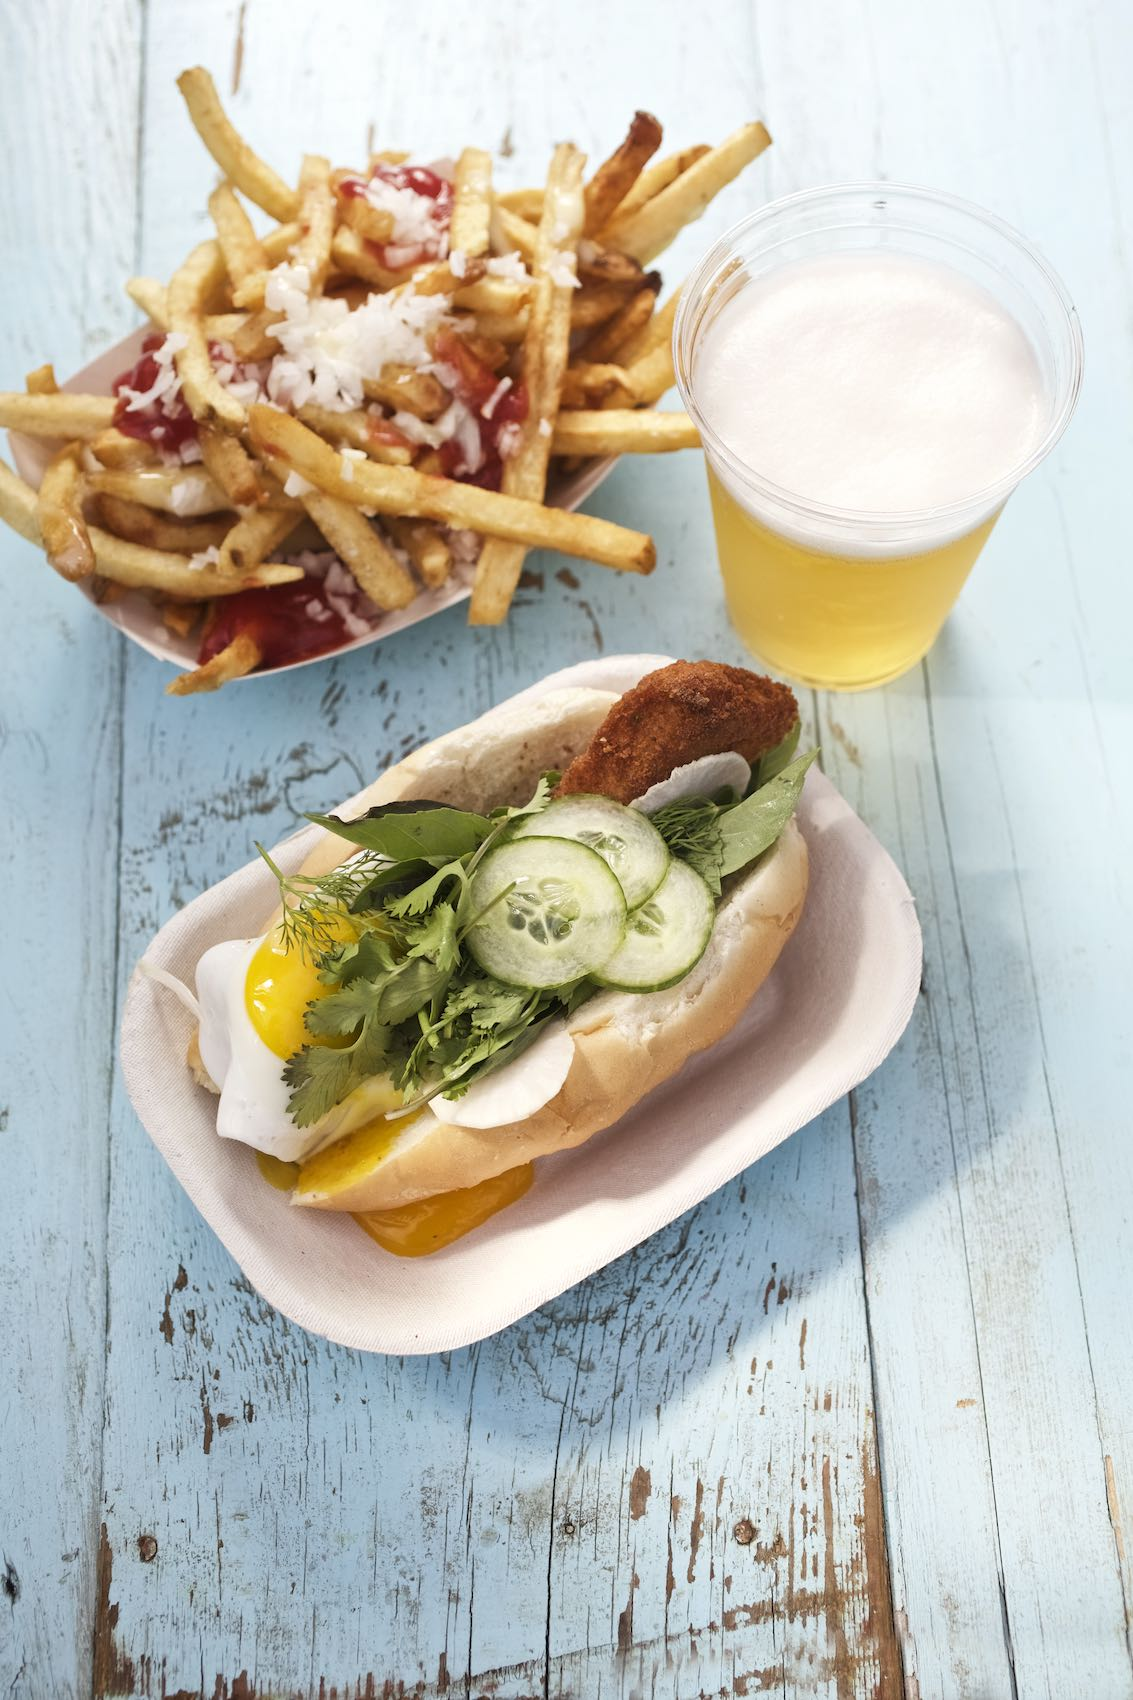 Jody Horton Photography - Bahn Mi sandwich with draft beer and loaded fries on blue picnic table.